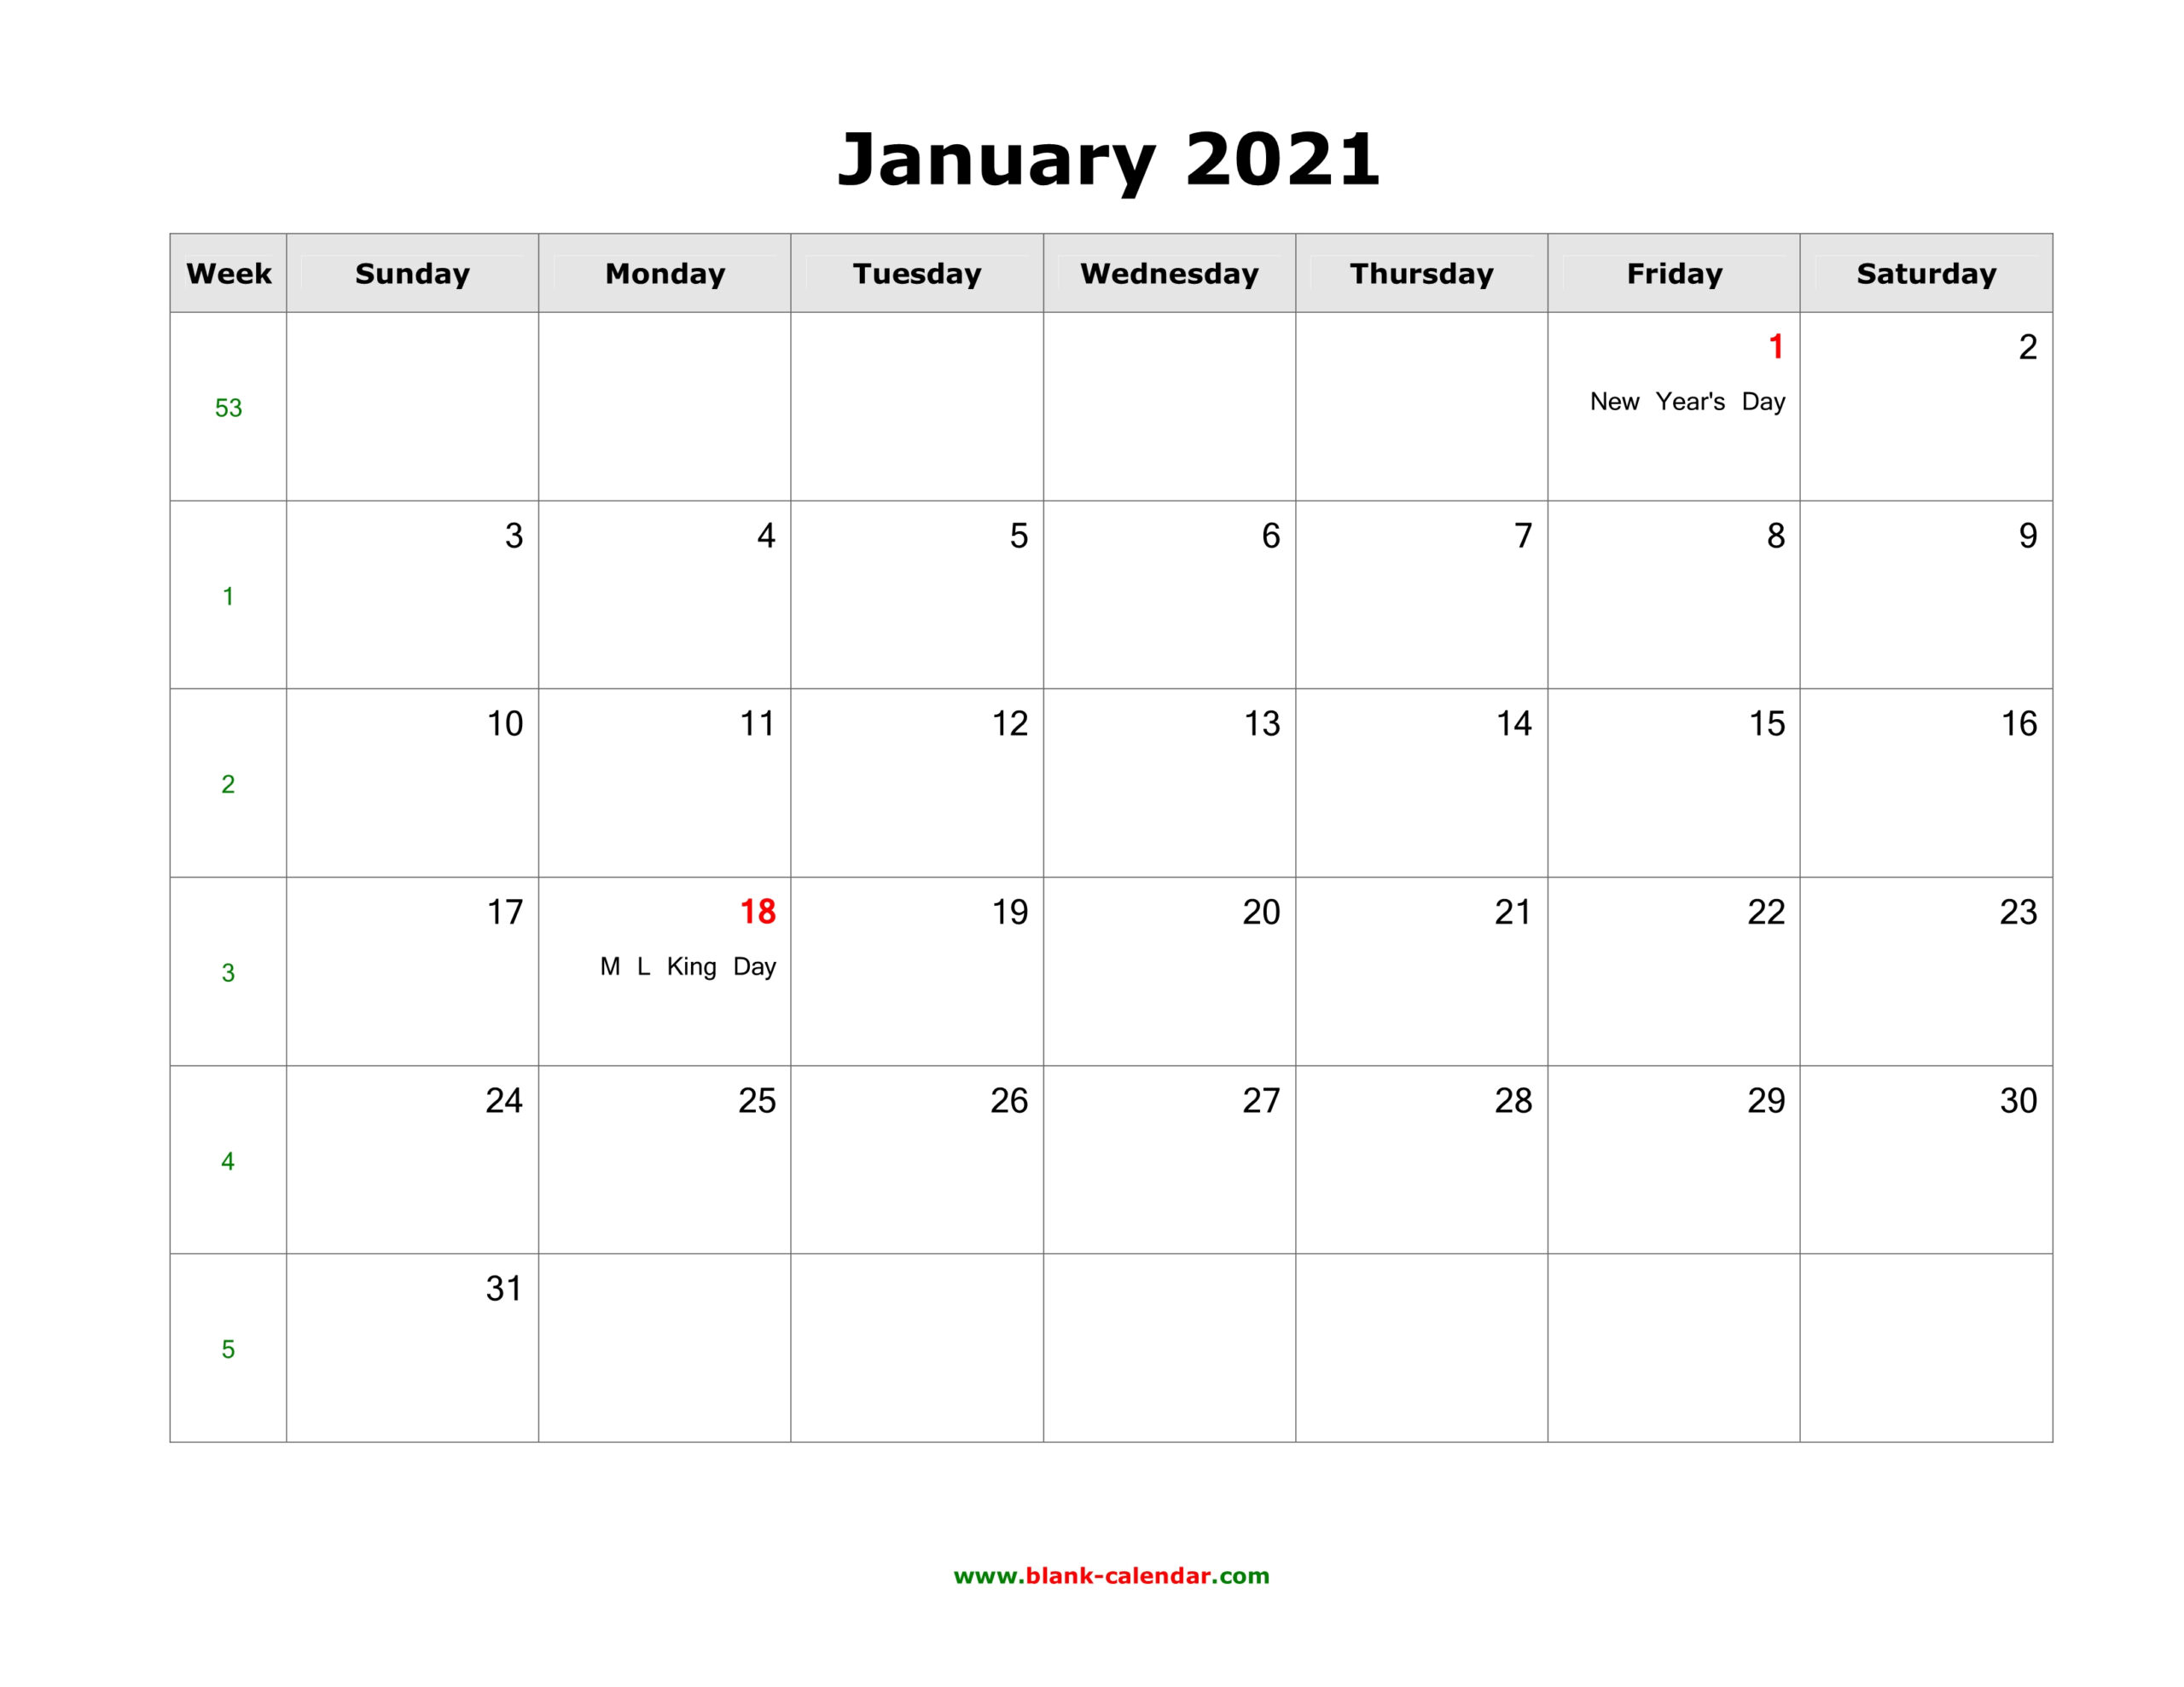 January 2021 Blank Calendar | Free Download Calendar Templates regarding 2021 Fill-In Calendar